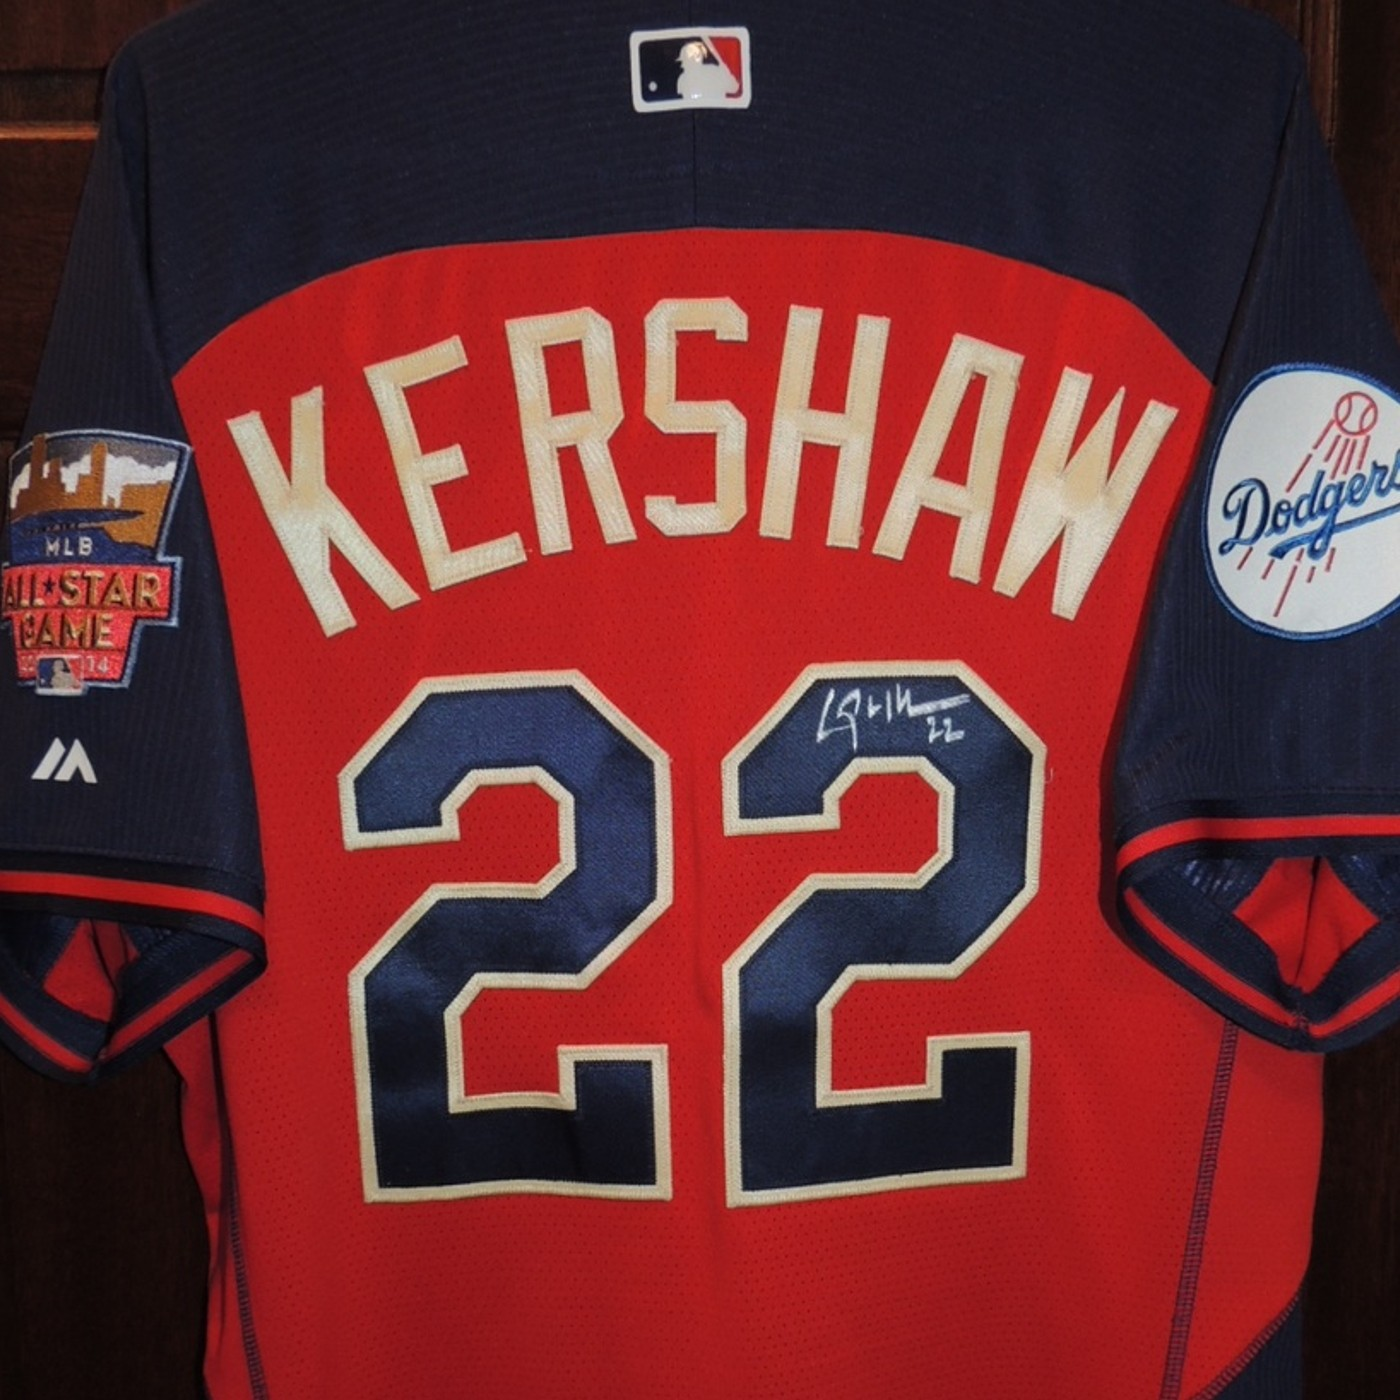 527a466ec Clayton Kershaw Autographed 2014 All-Star Game NL Batting Practice Jersey